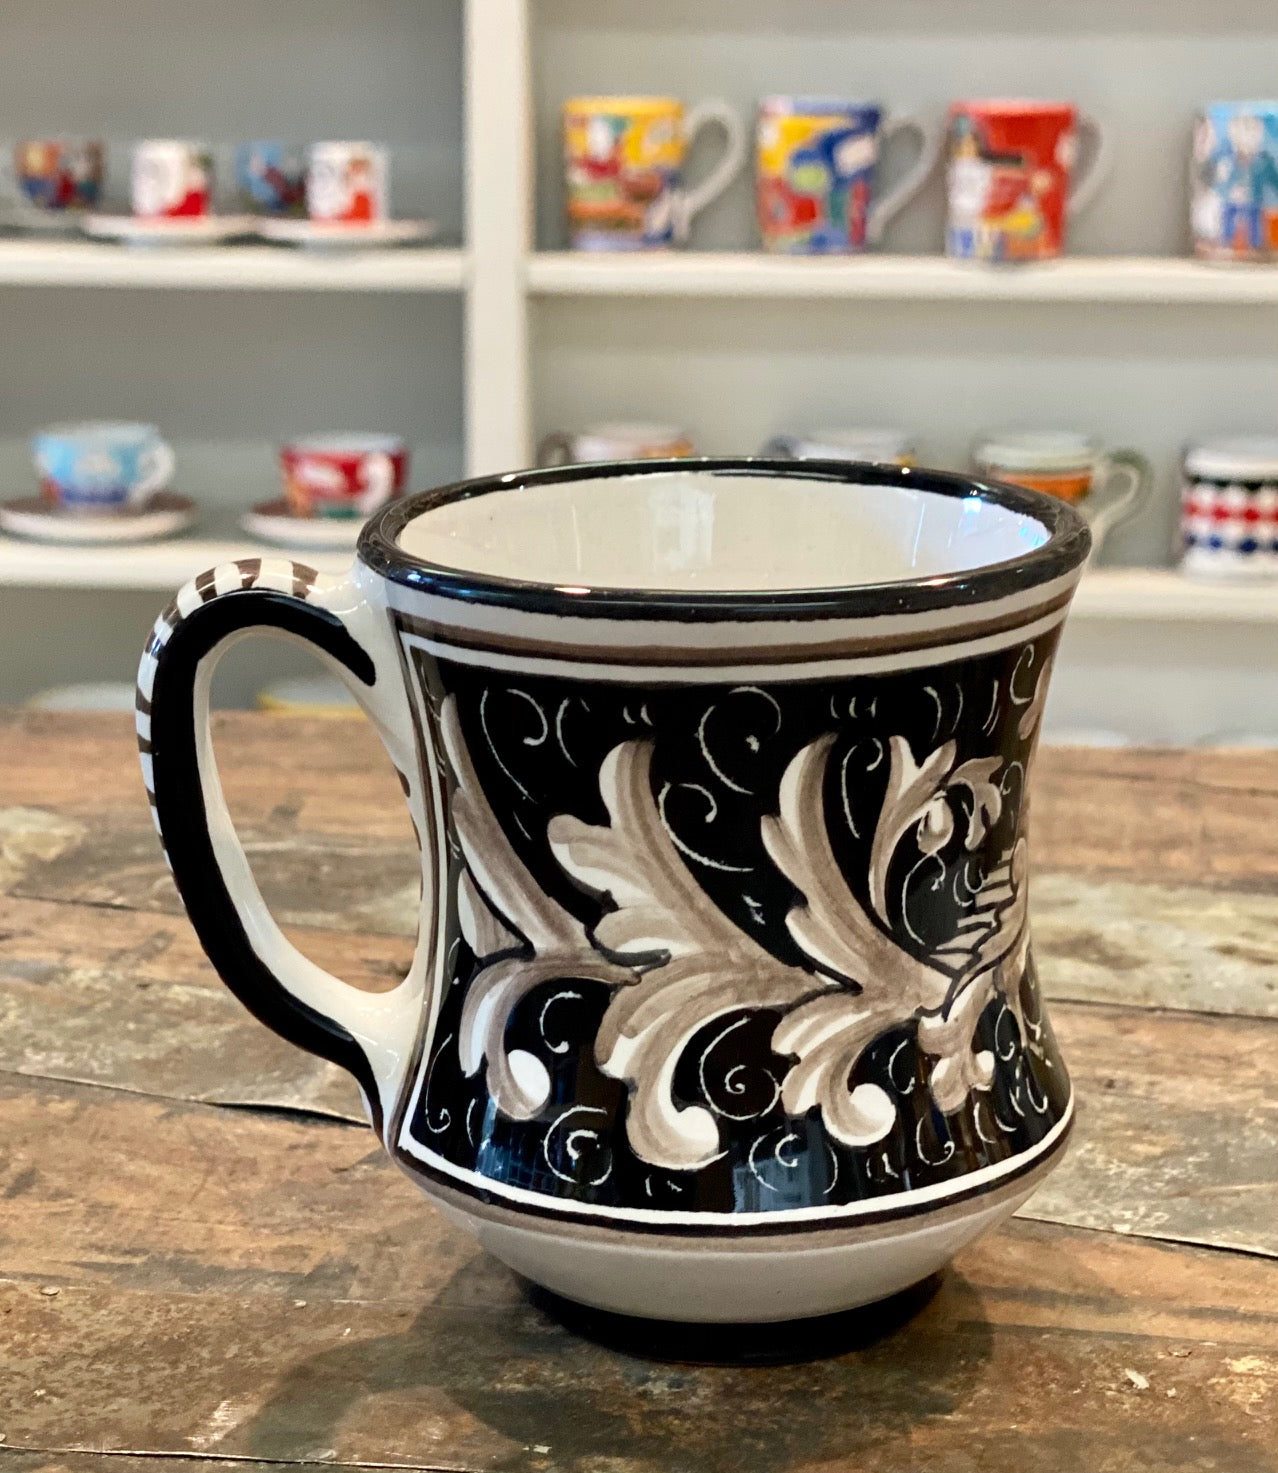 Caffe Collection Curved Mug